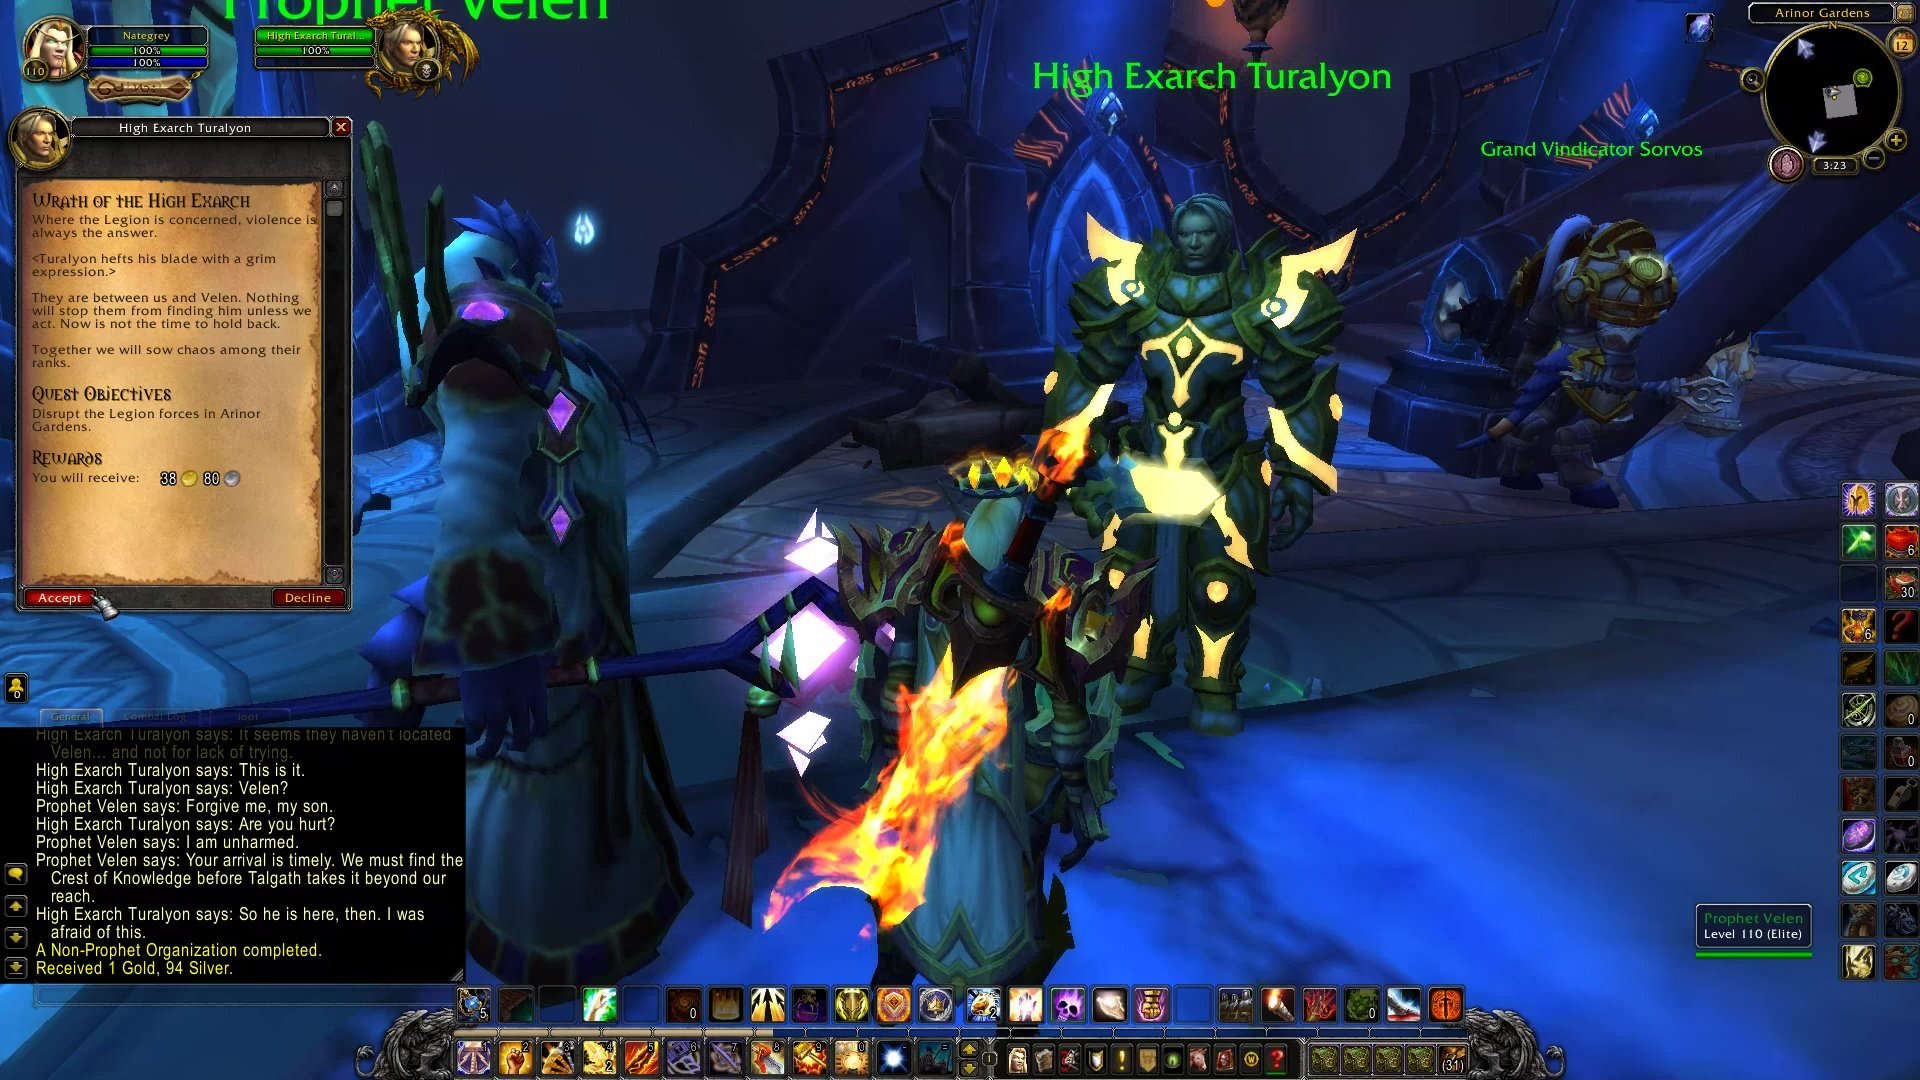 Wrath of the High Exarch